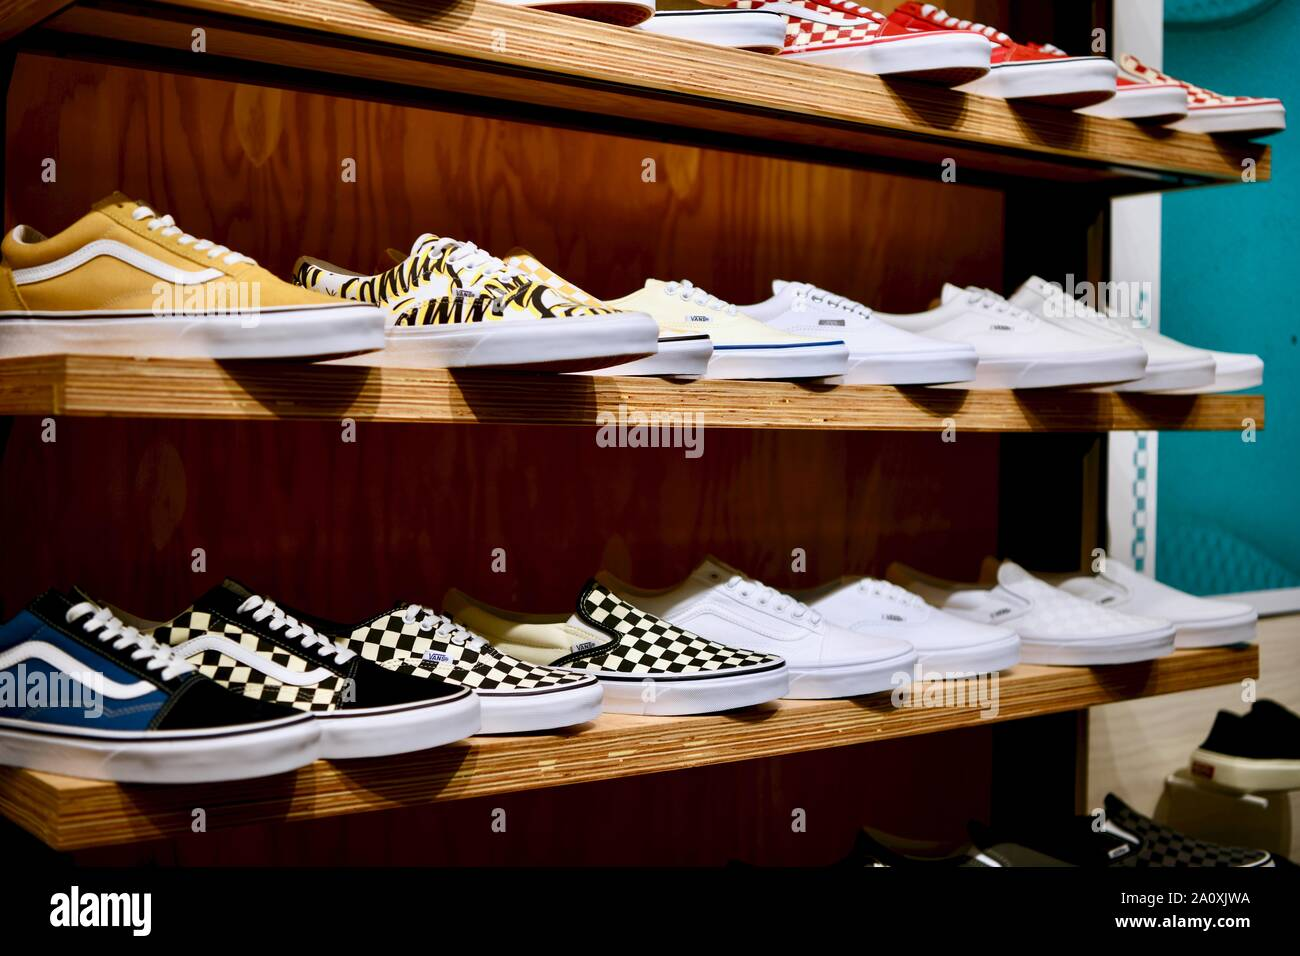 Vans Shoes Stock Photos & Vans Shoes Stock Images - Alamy